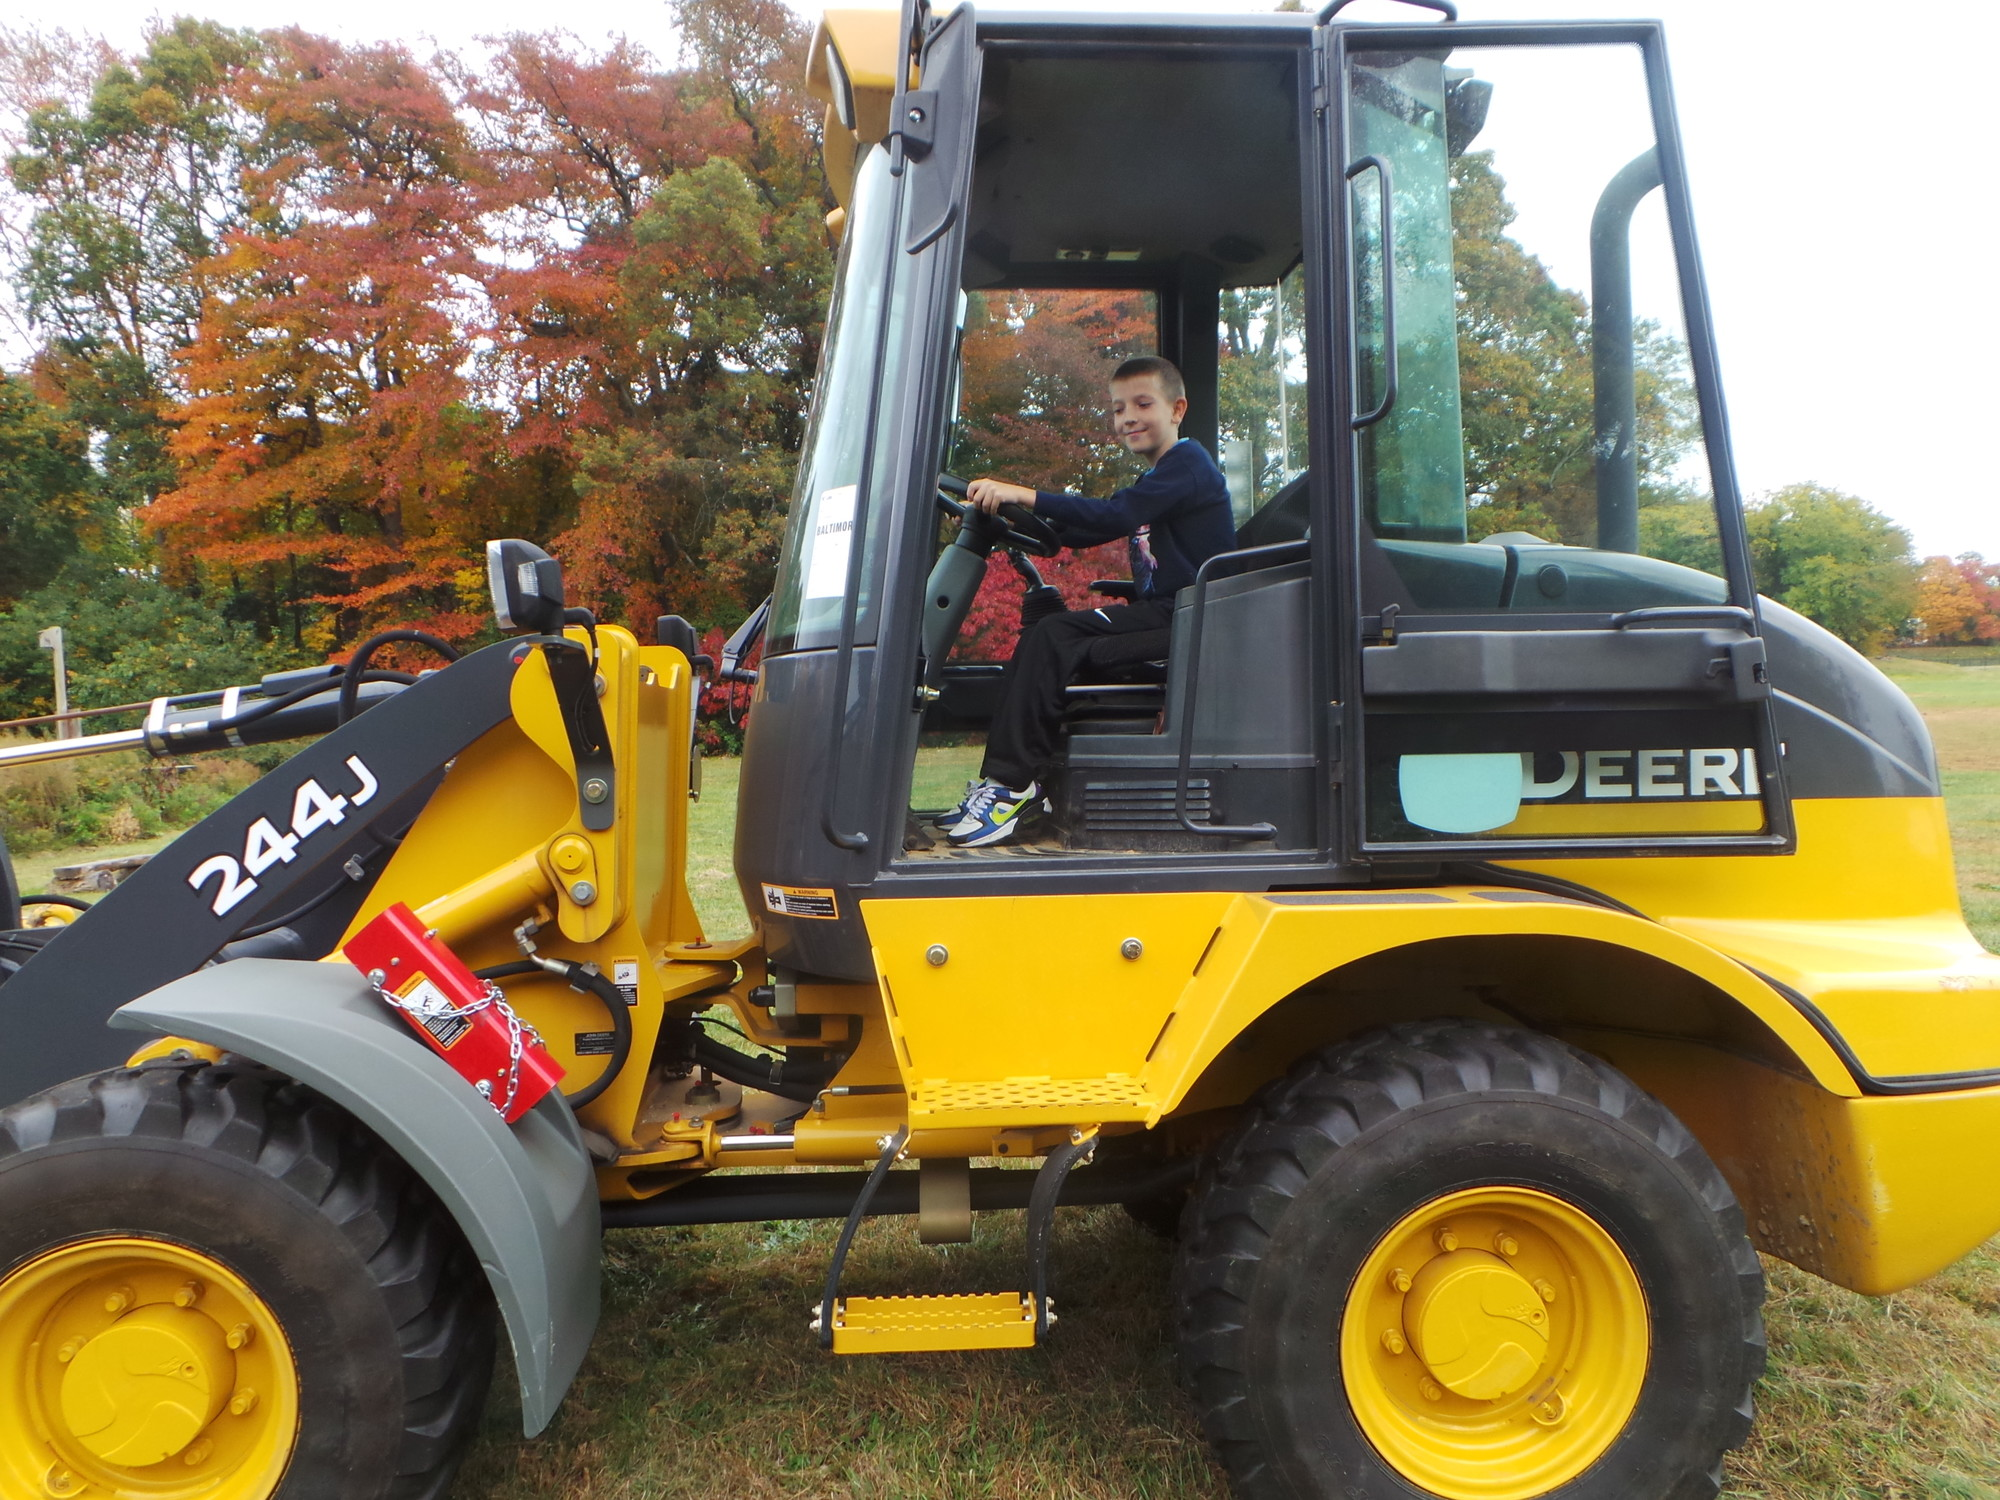 Tractor Seats Classrooms : For year old a gift of life herald community